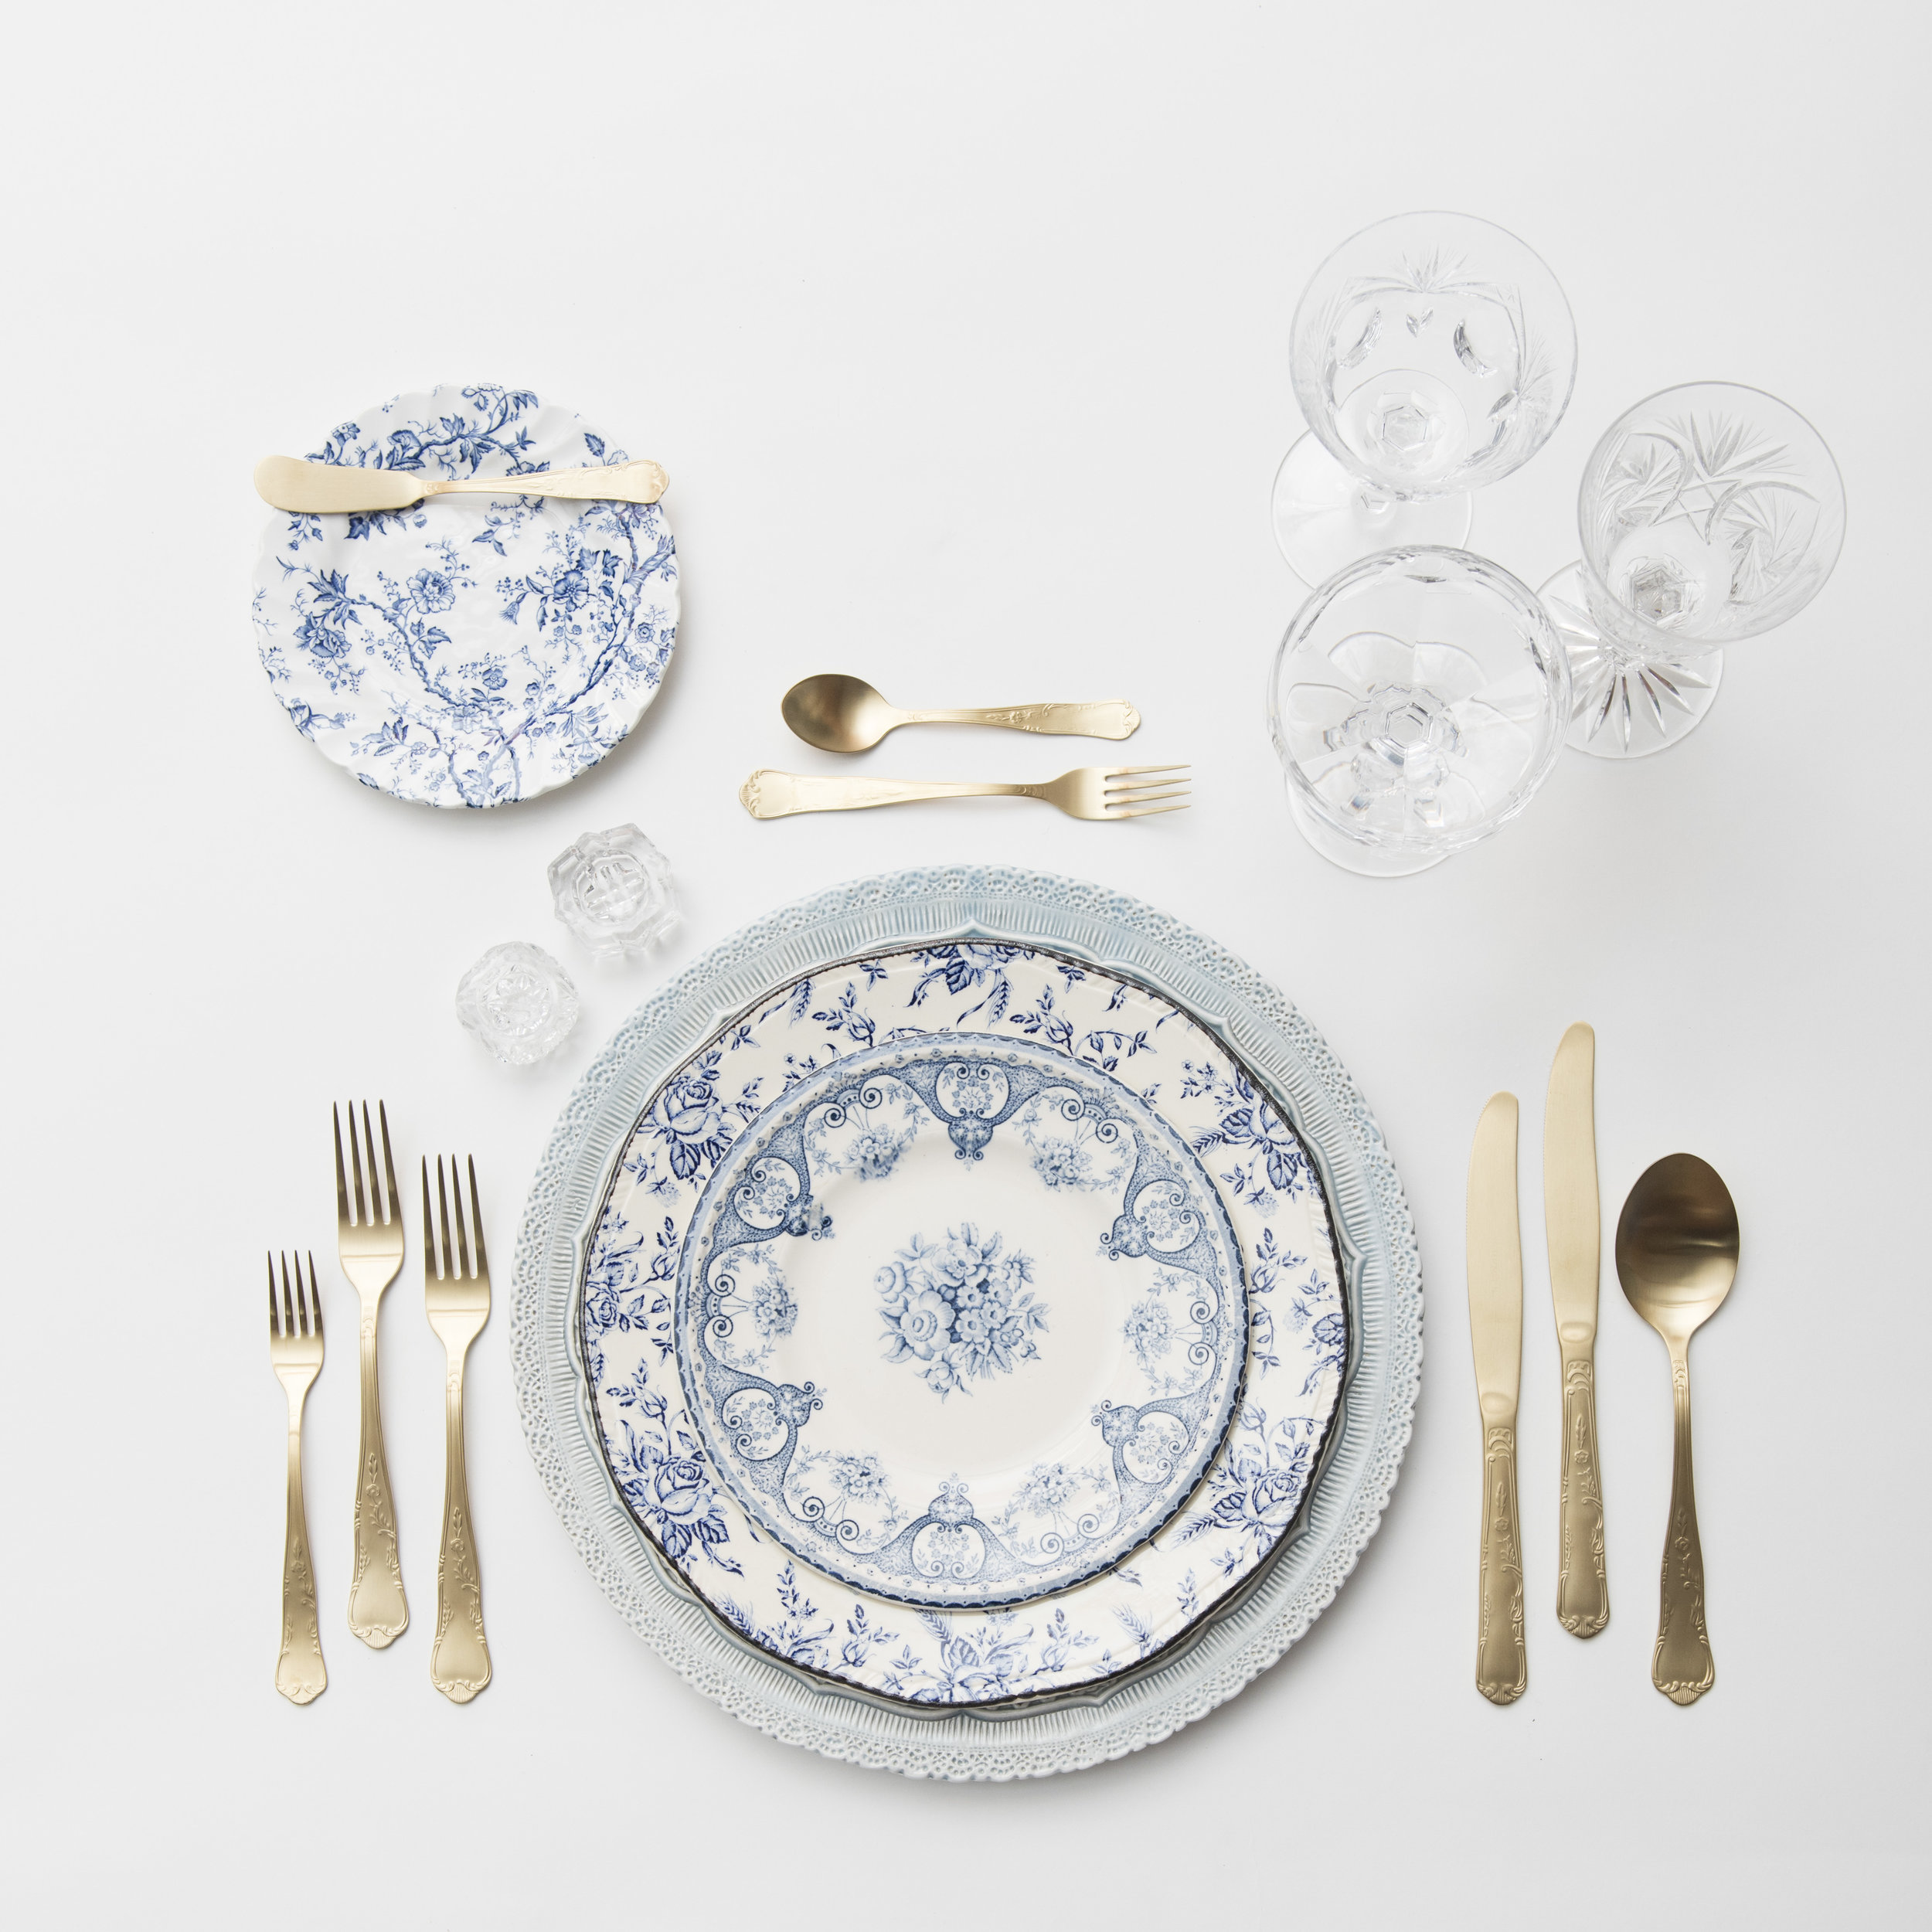 RENT: Lace Chargers in Dusty Blue + Blue Garden Collection Vintage China + Chateau Flatware in Matte Gold + Vintage Cut Crystal Goblets + Vintage Champagne Coupes + Antique Crystal Salt Cellars